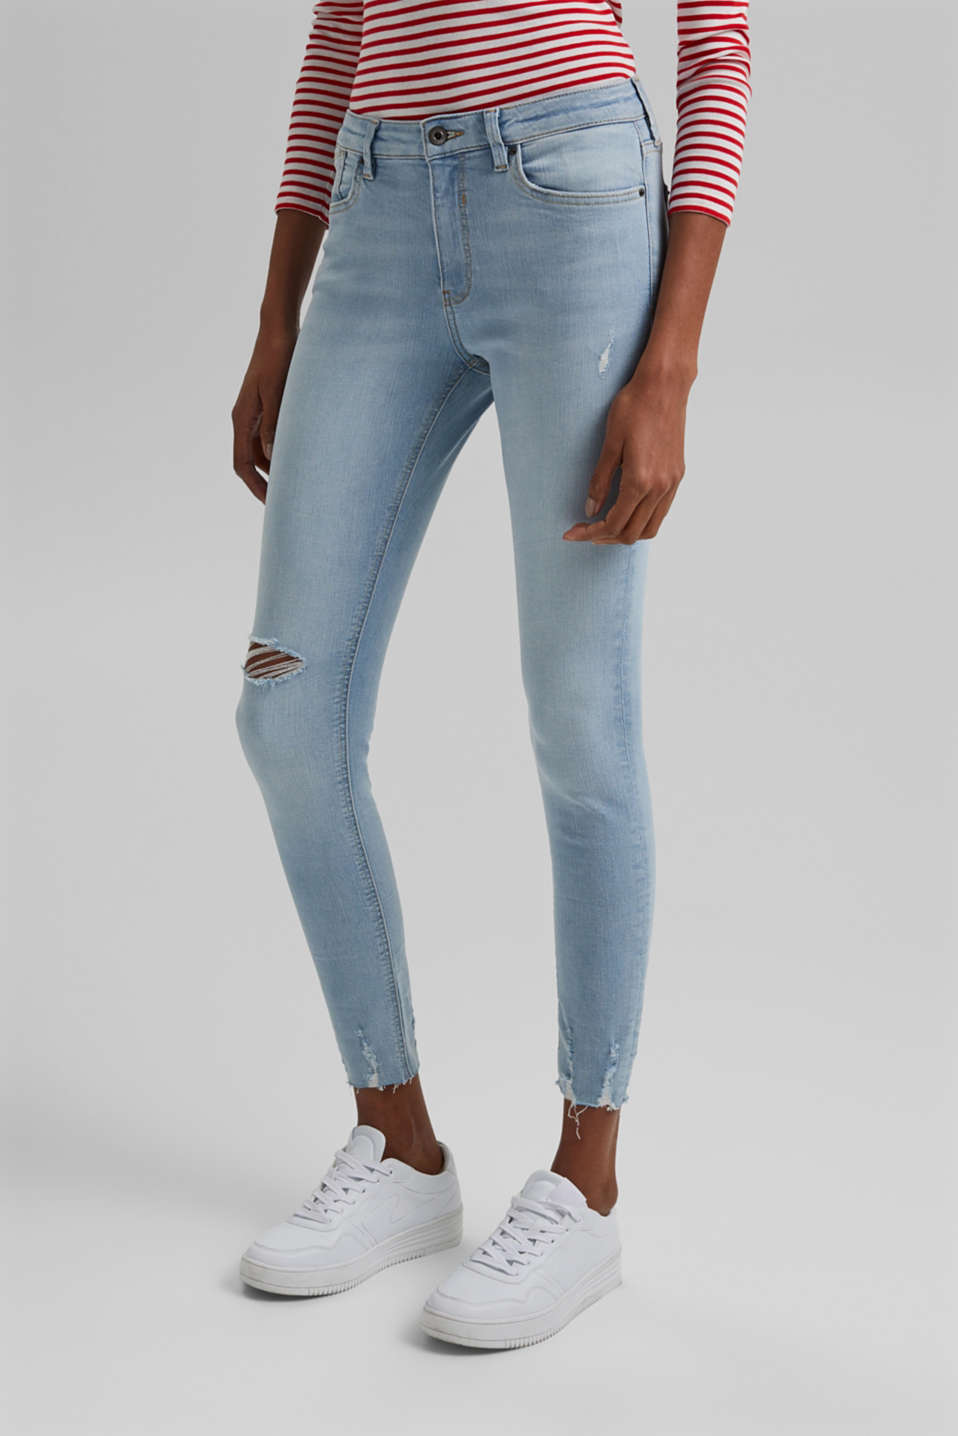 edc - Ankle-length stretch jeans made of organic cotton